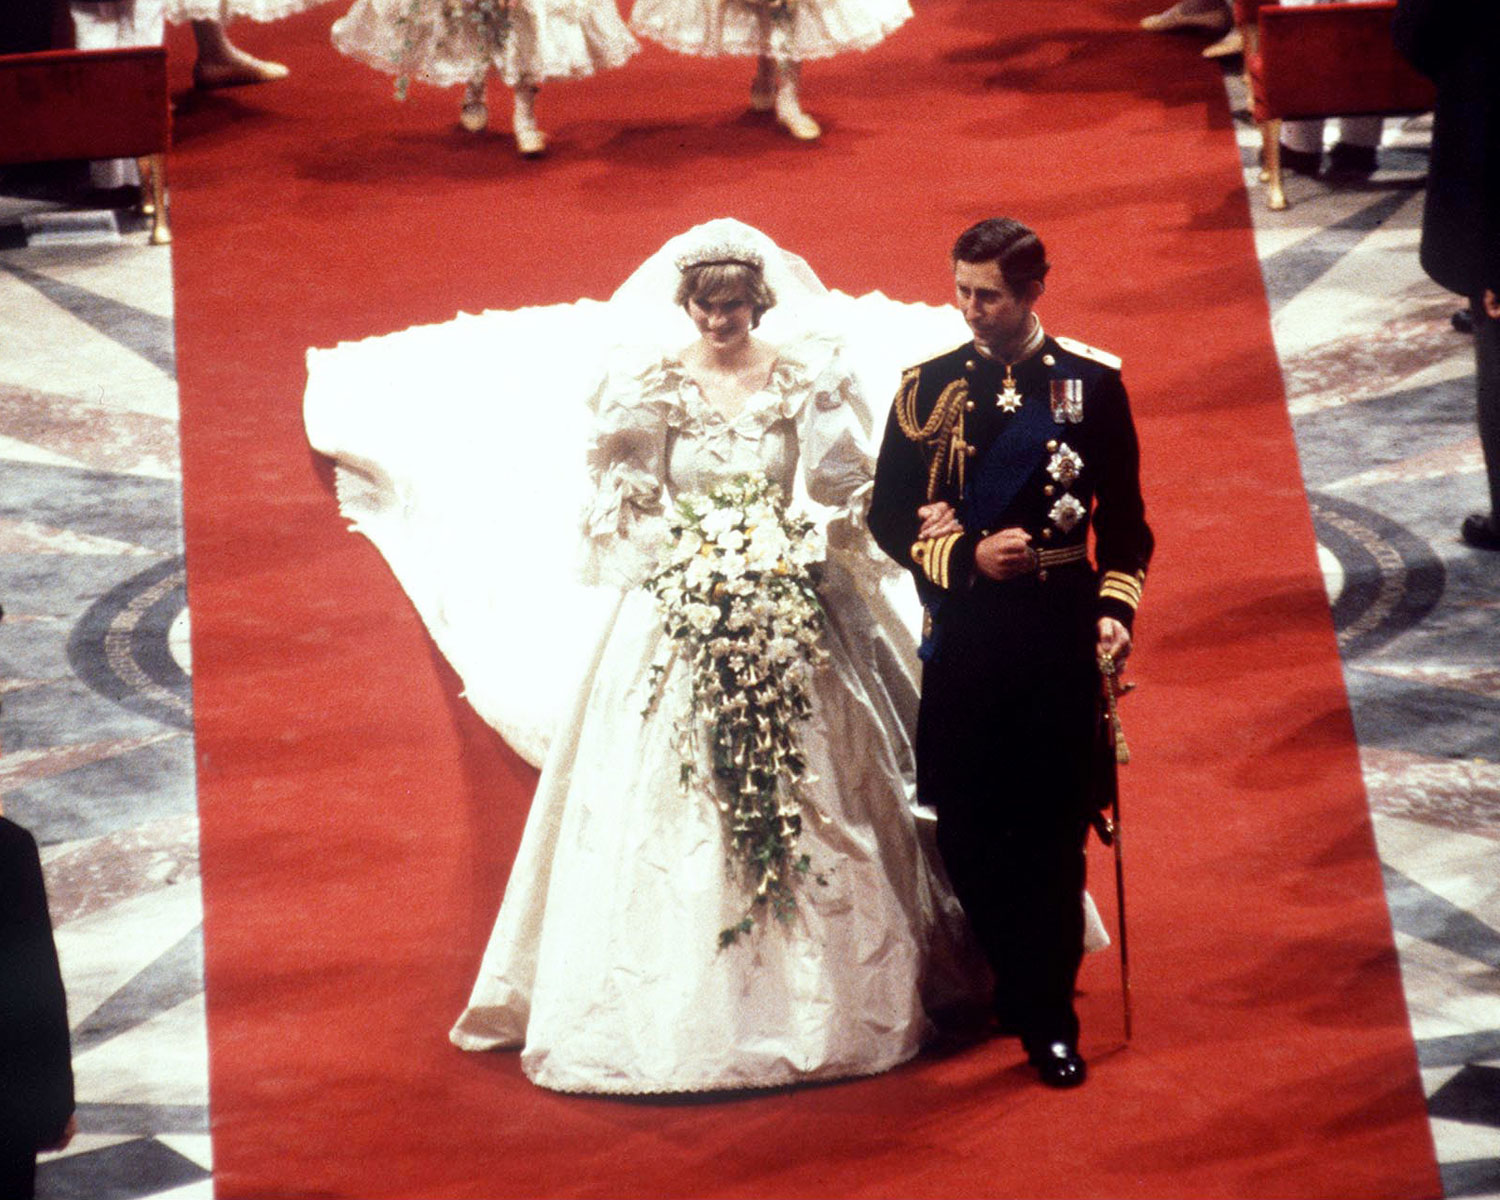 Diana And Charles Wedding.Royal Wedding Princess Diana Charles 1500 The Knot News